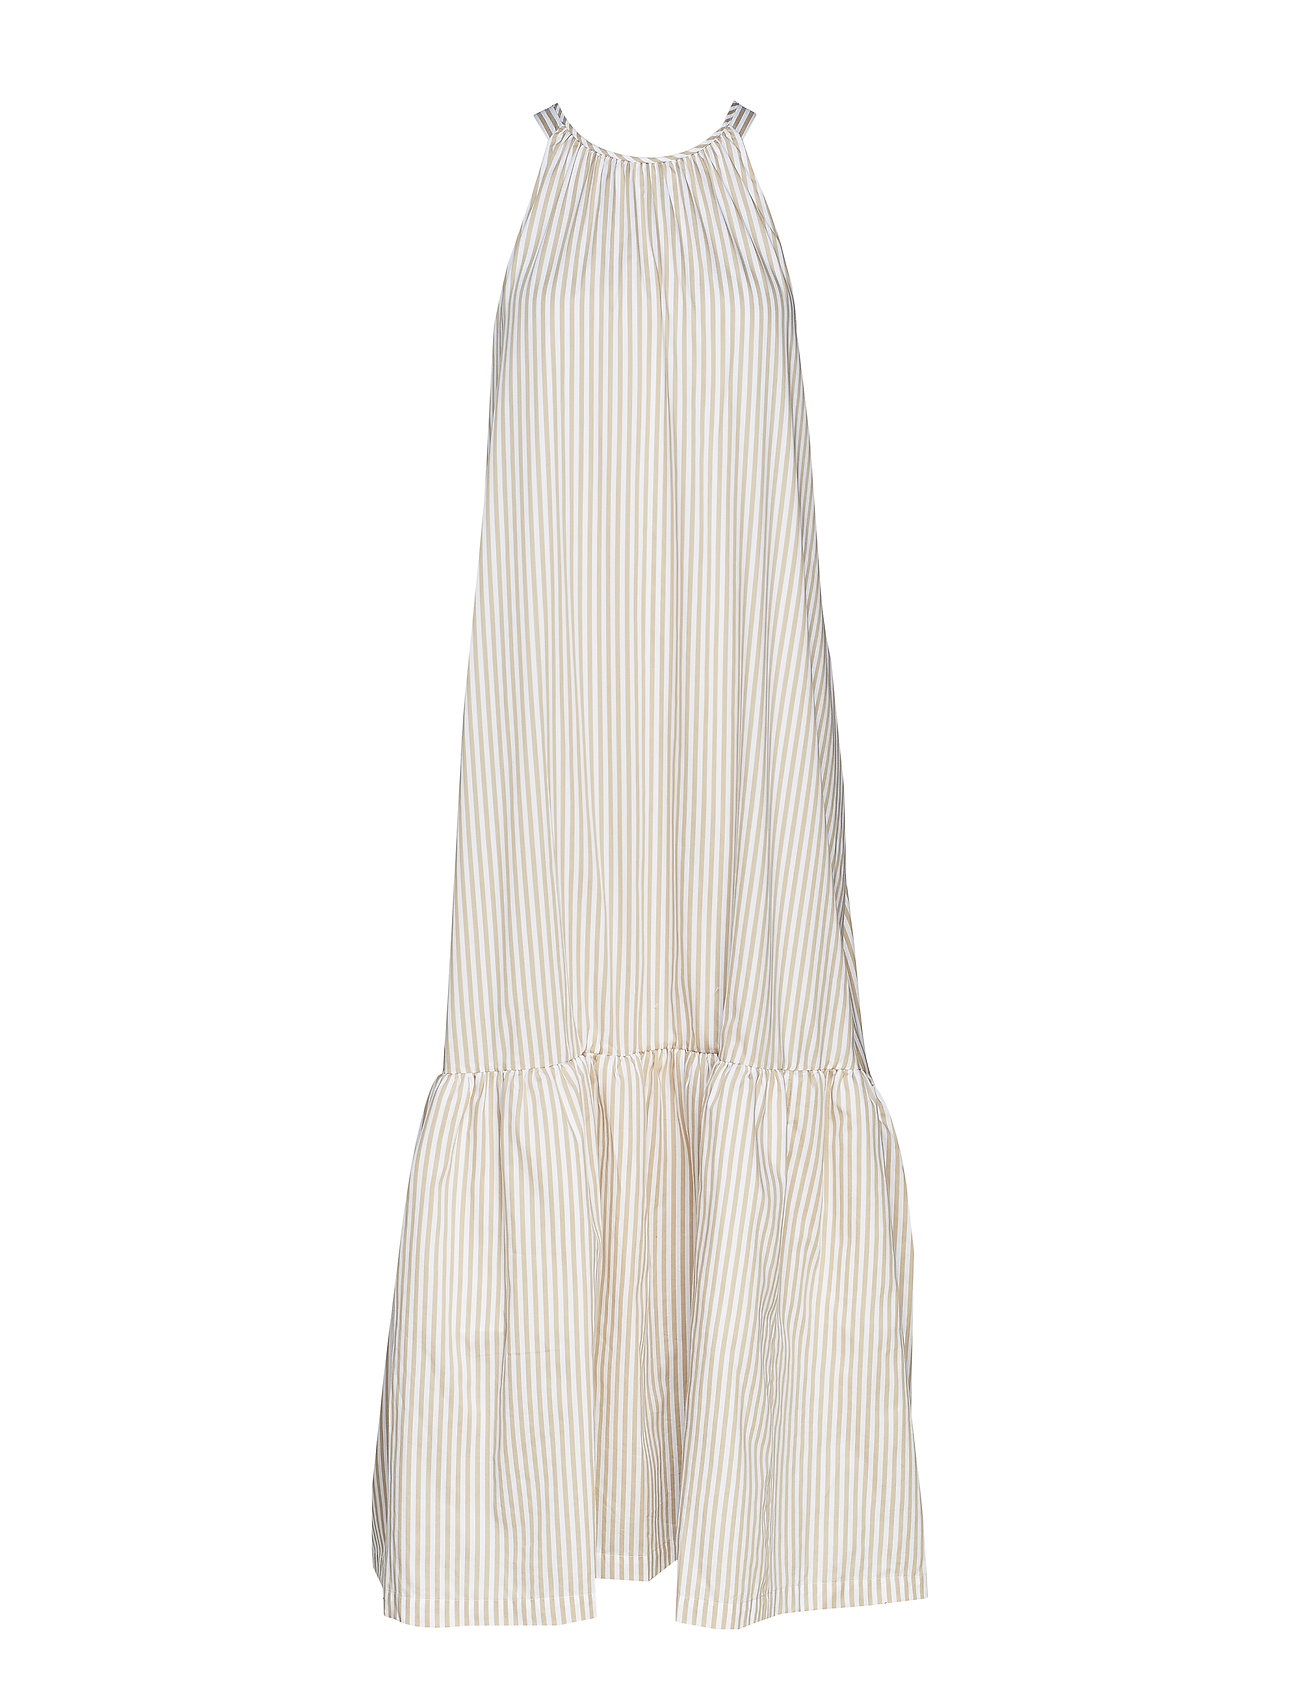 3.1 Phillip Lim LONG STRIPED TENT DRESS - KHAKI-WHITE